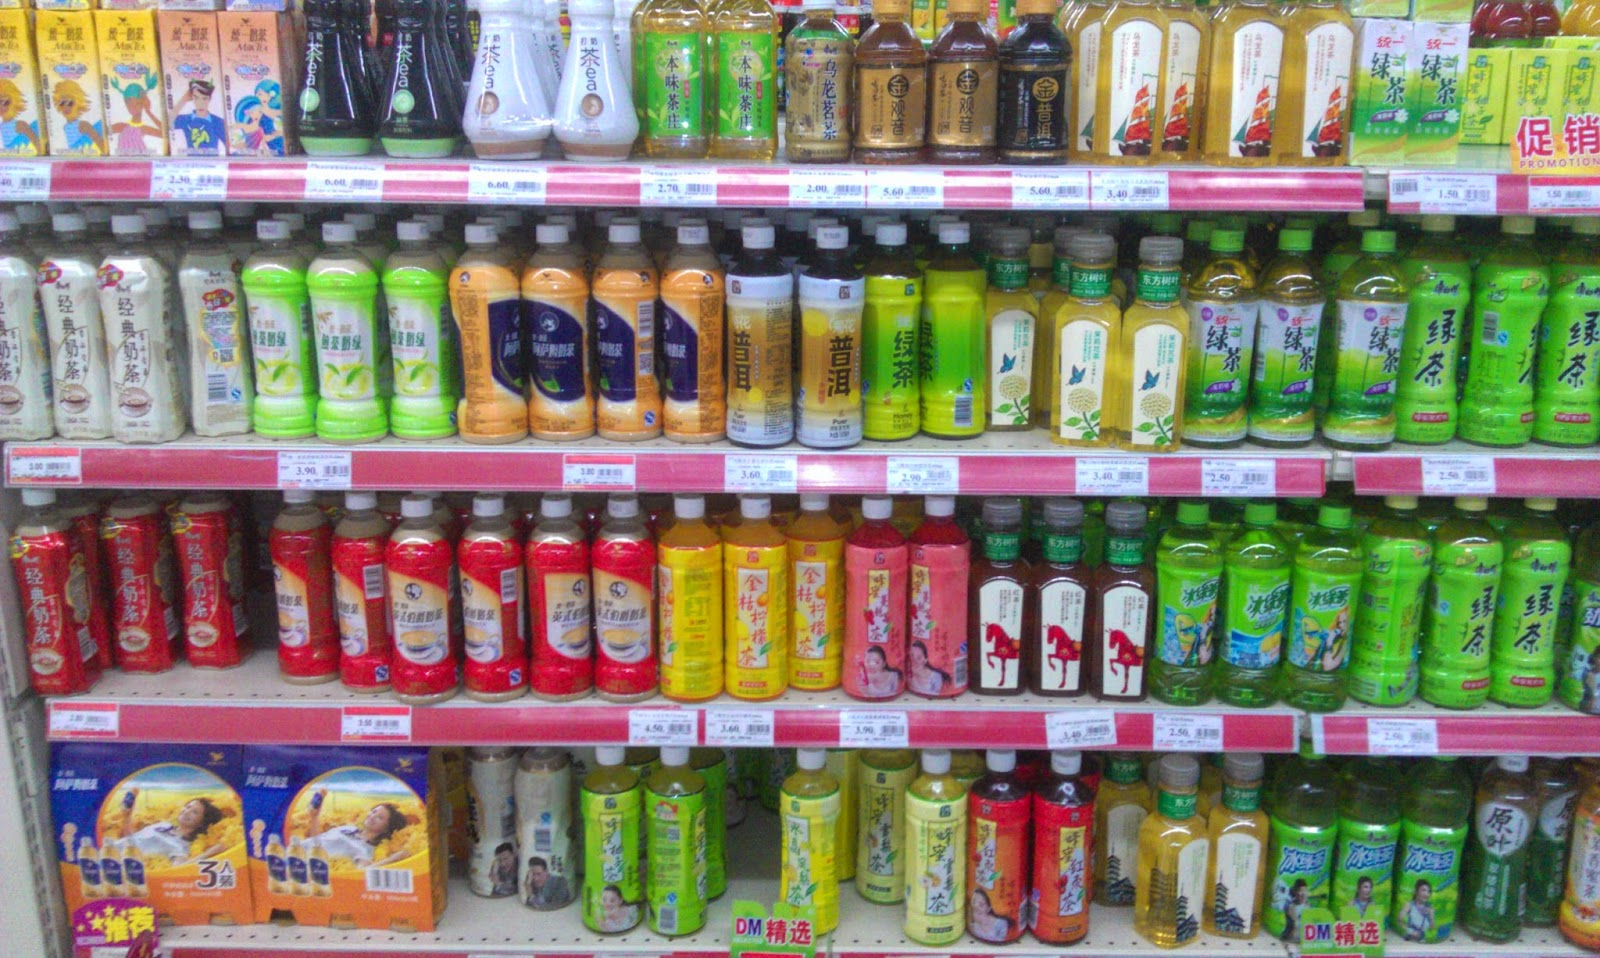 Beyond Soda: How and Why Your Beverage Options Are Exploding